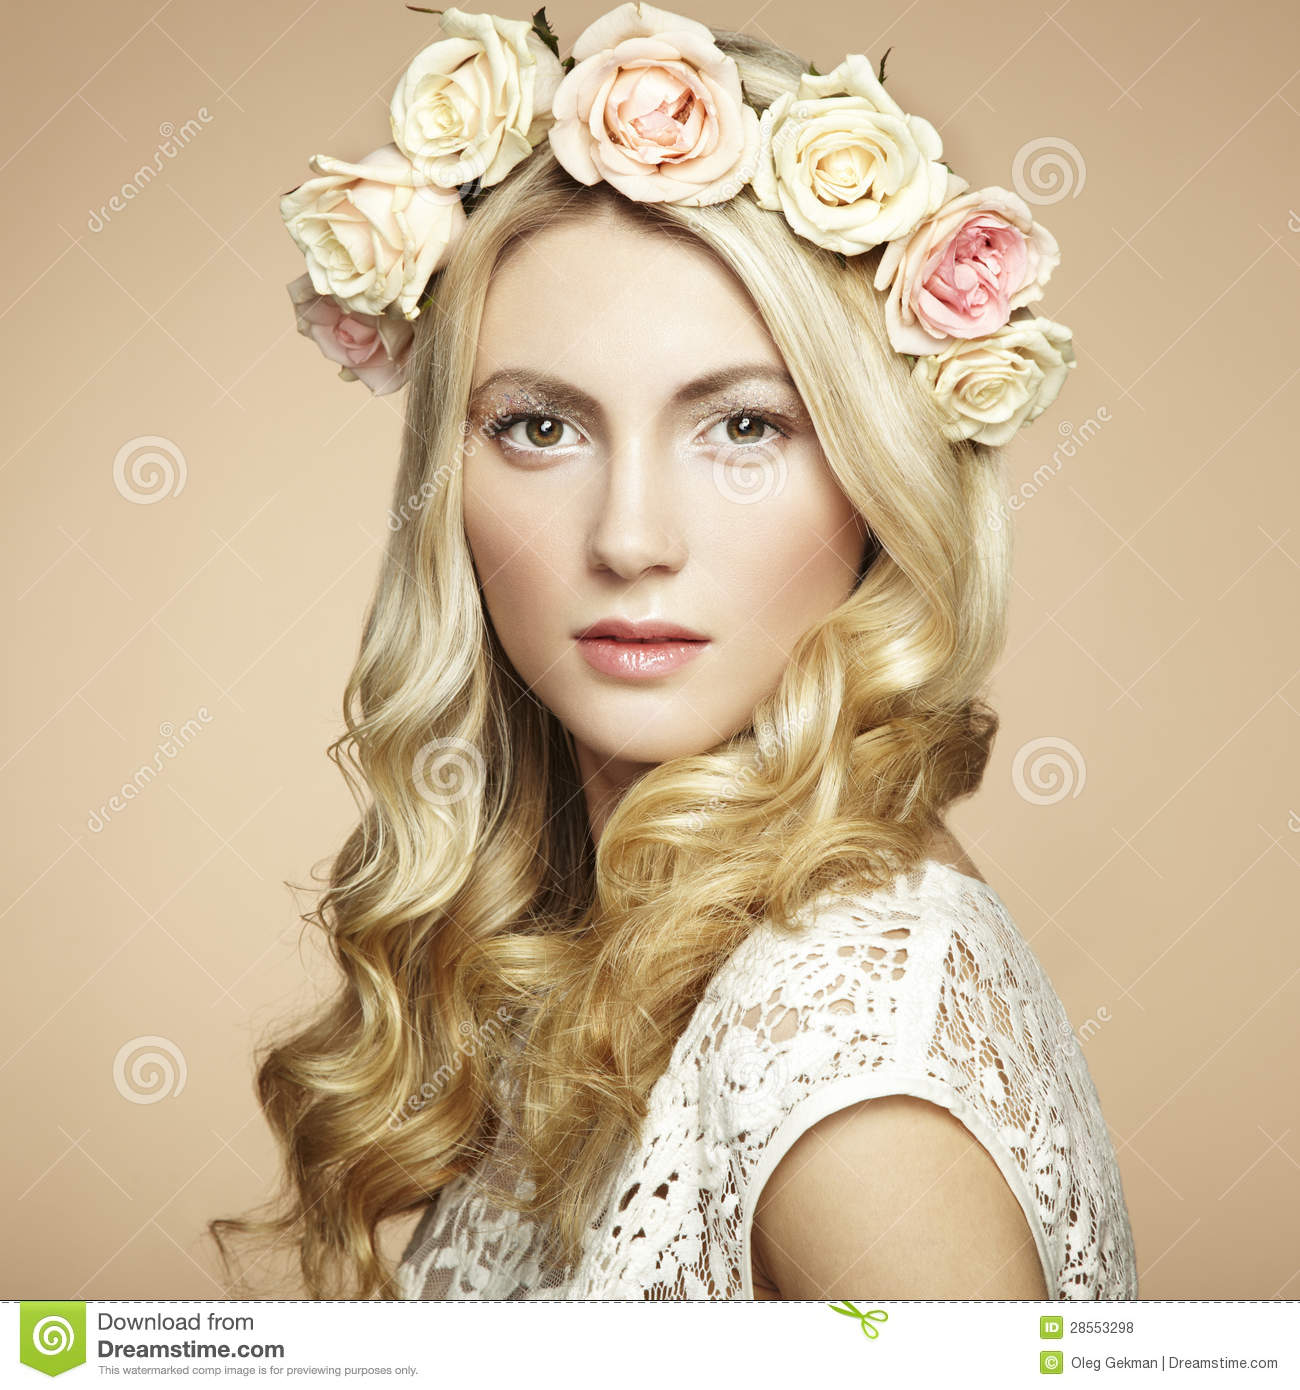 Portrait Of A Beautiful Blonde Woman With Flowers By